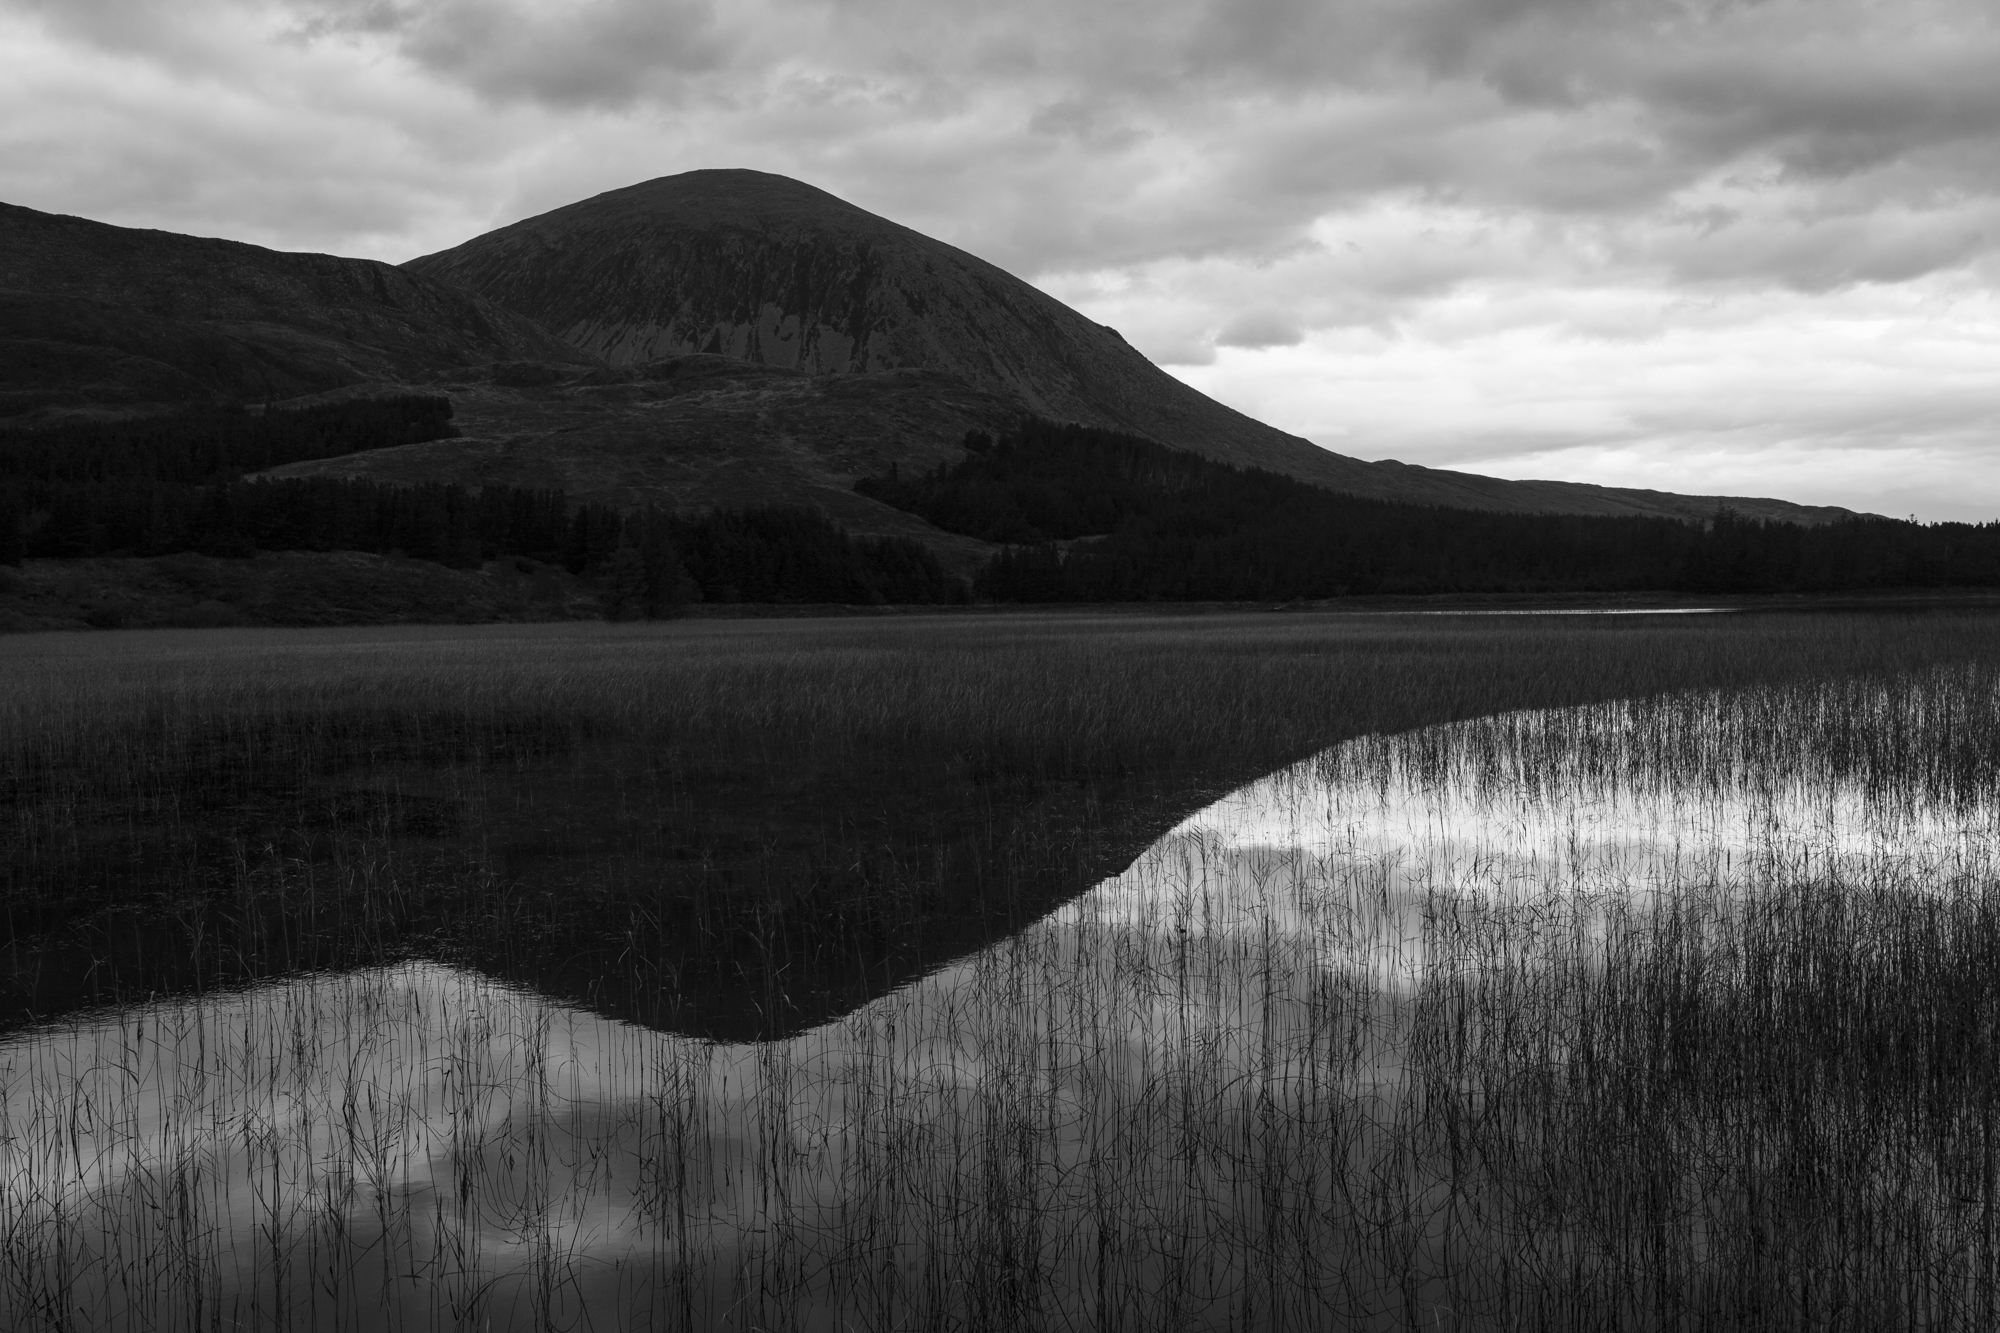 ©_Mark_Maio_2014_Isle_of_Skye_Reflection_In_Loch.jpg